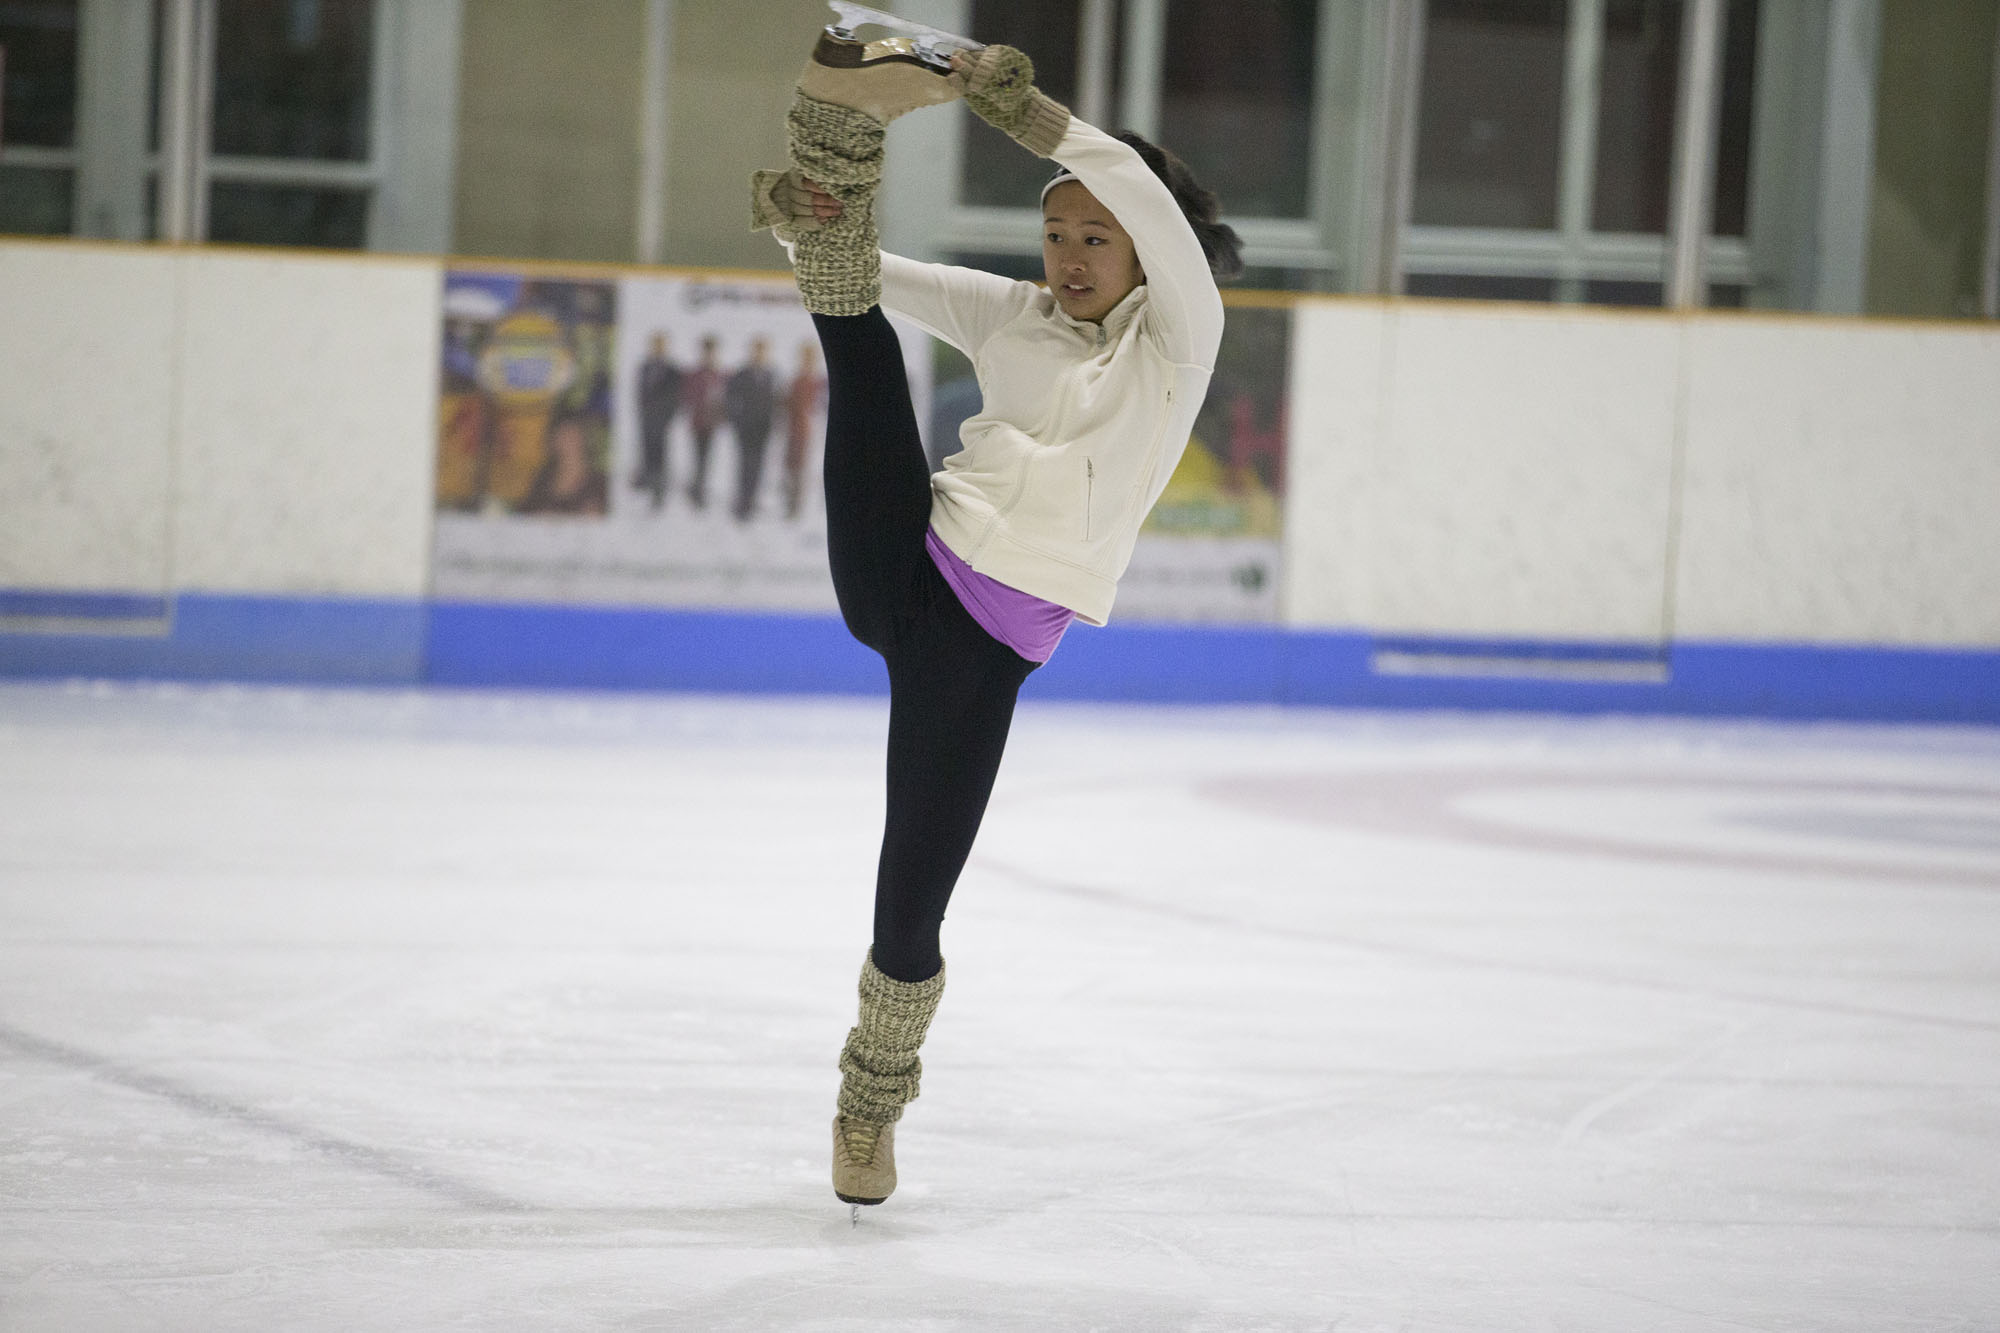 Slater works with skaters to better prepare their bodies for the many unusual bends and twists demanded by the sport. Here UVA club skater Marcha Kiatrungrit practices an upright grab spin.